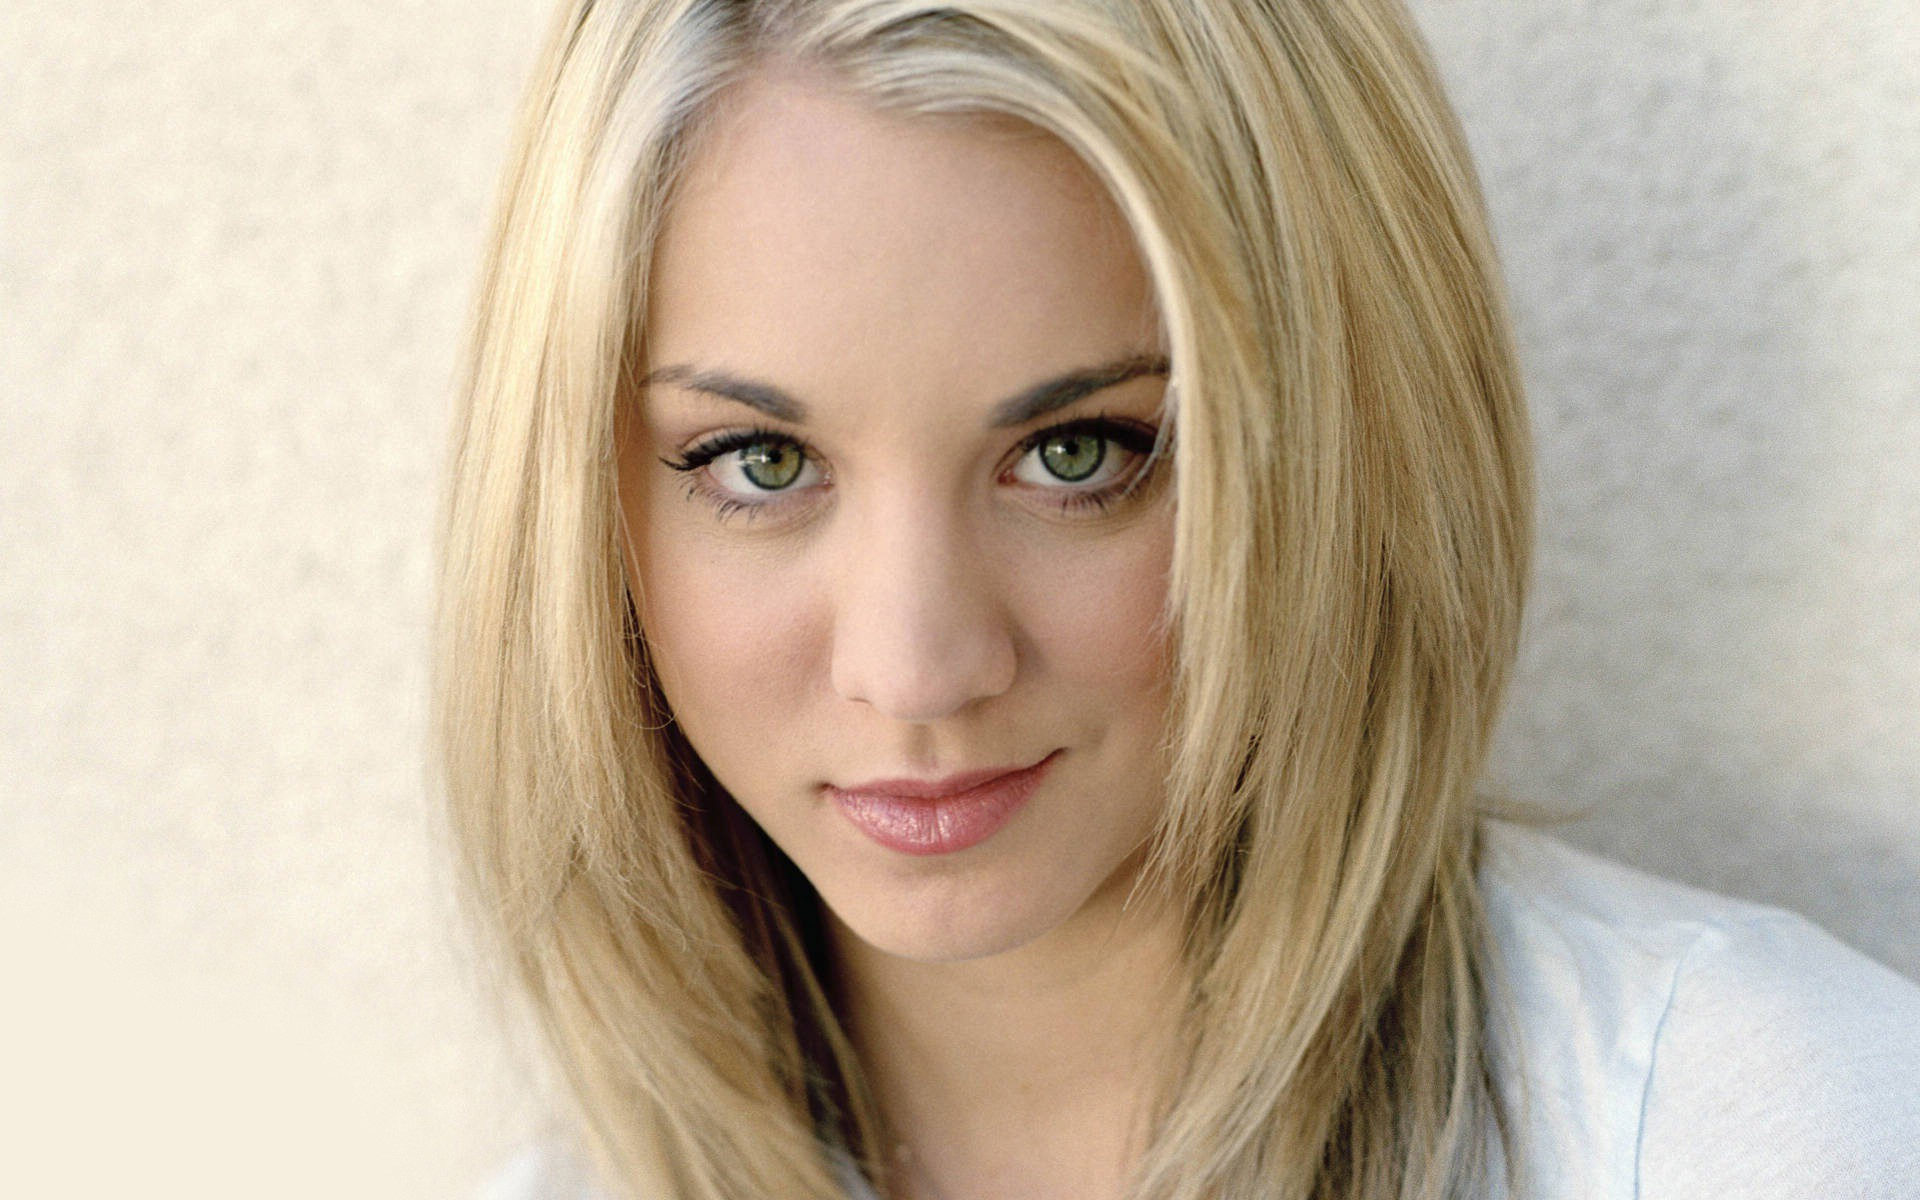 kaley cuoco wallpaper 25666 1920x1200 px ~ hdwallsource